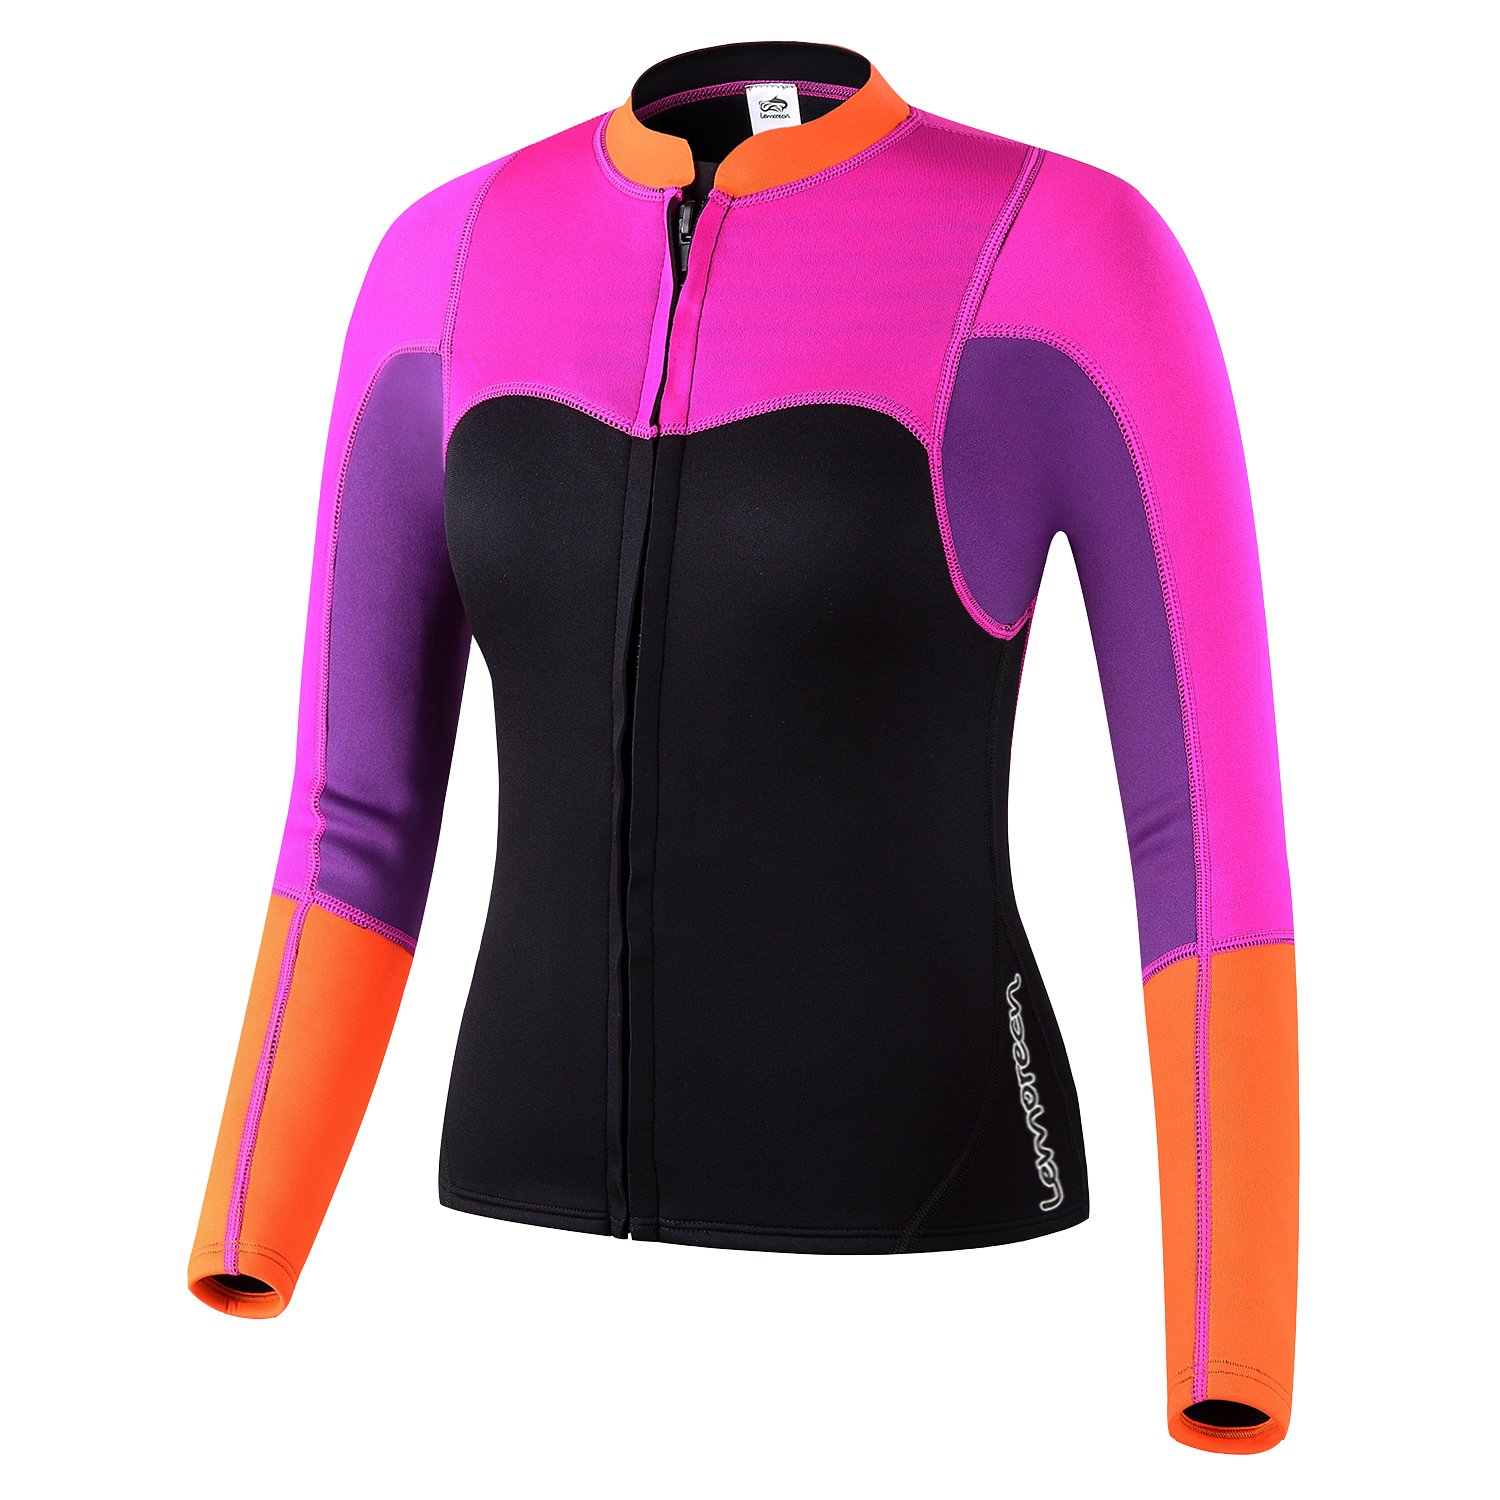 Lemorecn Womens 2mm Neoprene Long Sleeve Jacket Front Zipper Wetsuit Top (2094P8) by Lemorecn